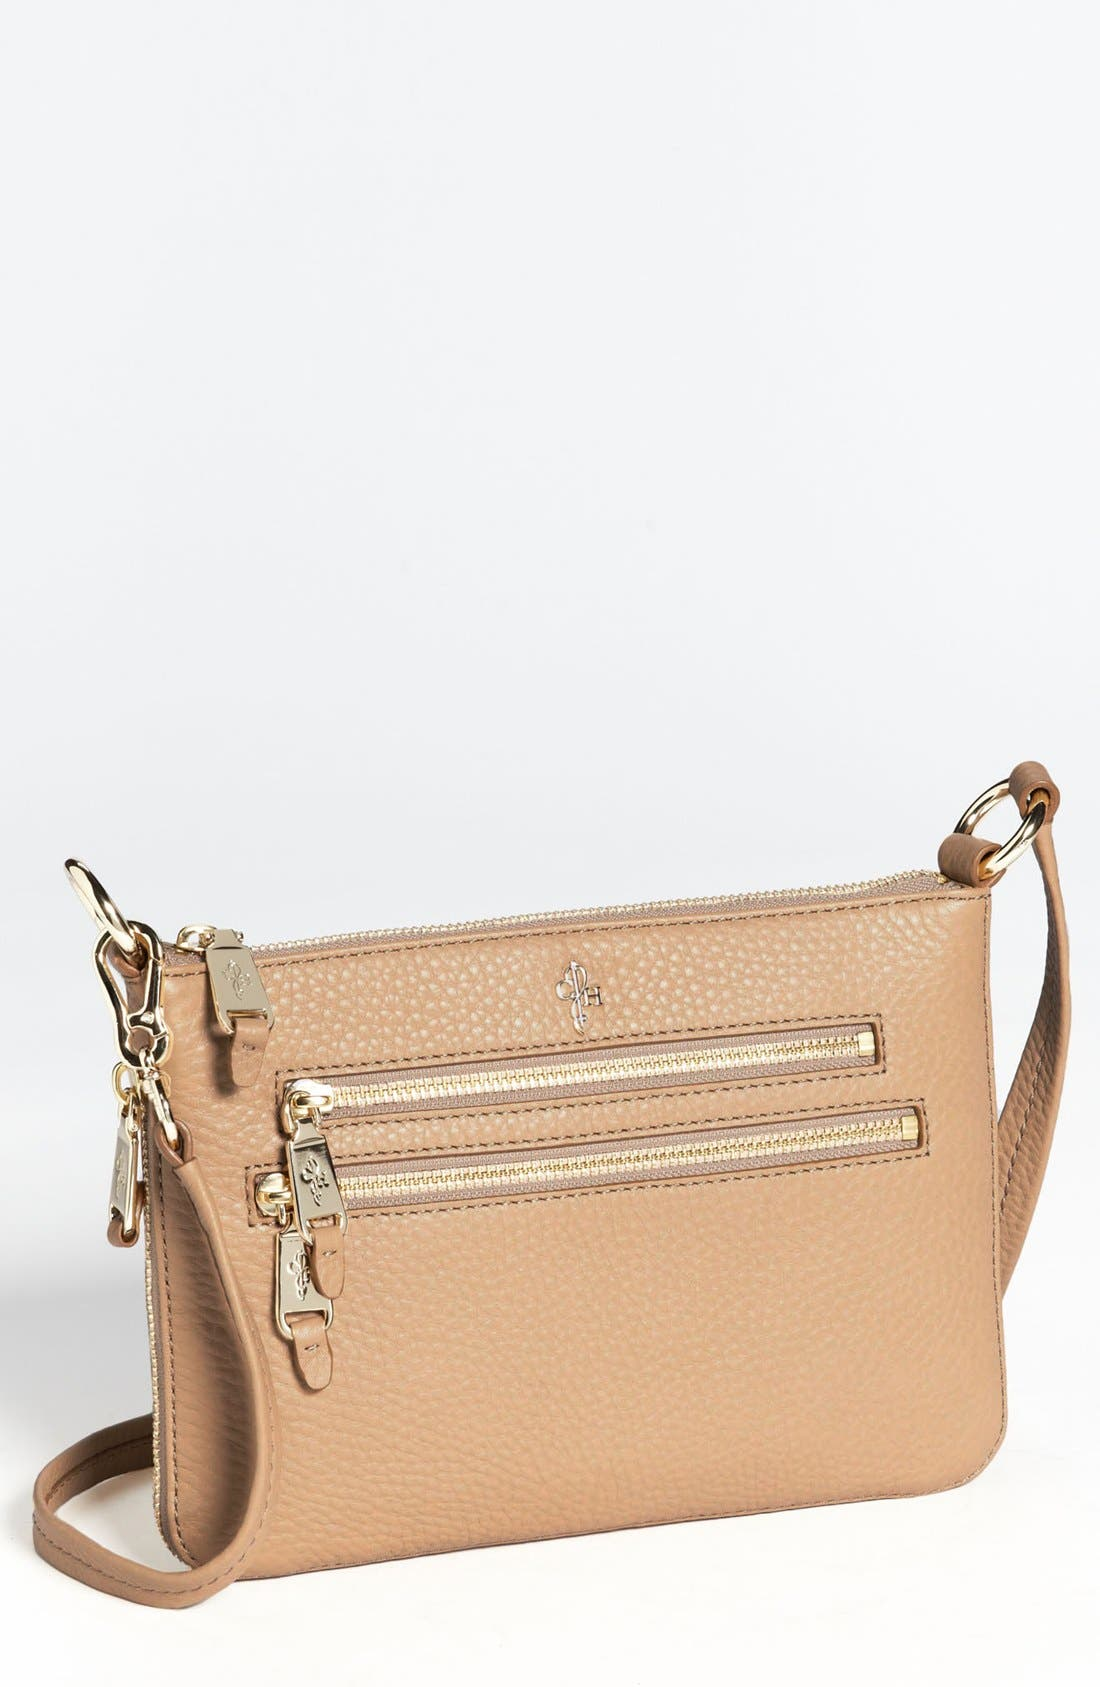 Main Image - Cole Haan 'Village Sheila' Crossbody Bag, Small